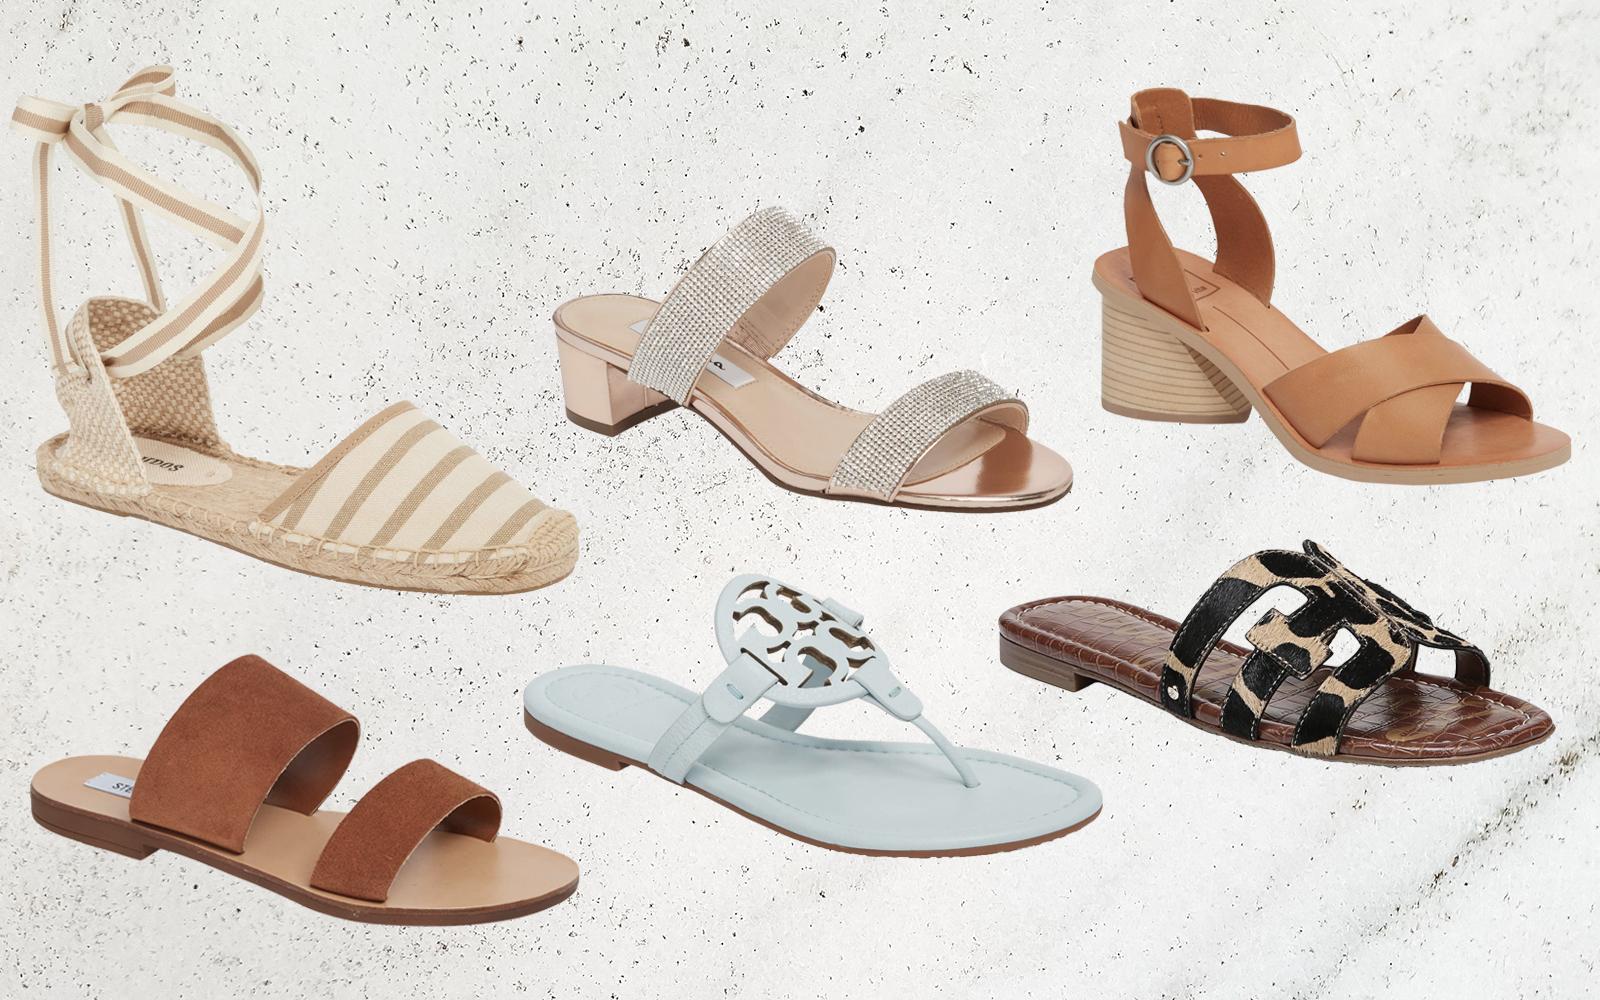 86013438edc068 The Best Sandals from Nordstrom s Huge Summer Sale